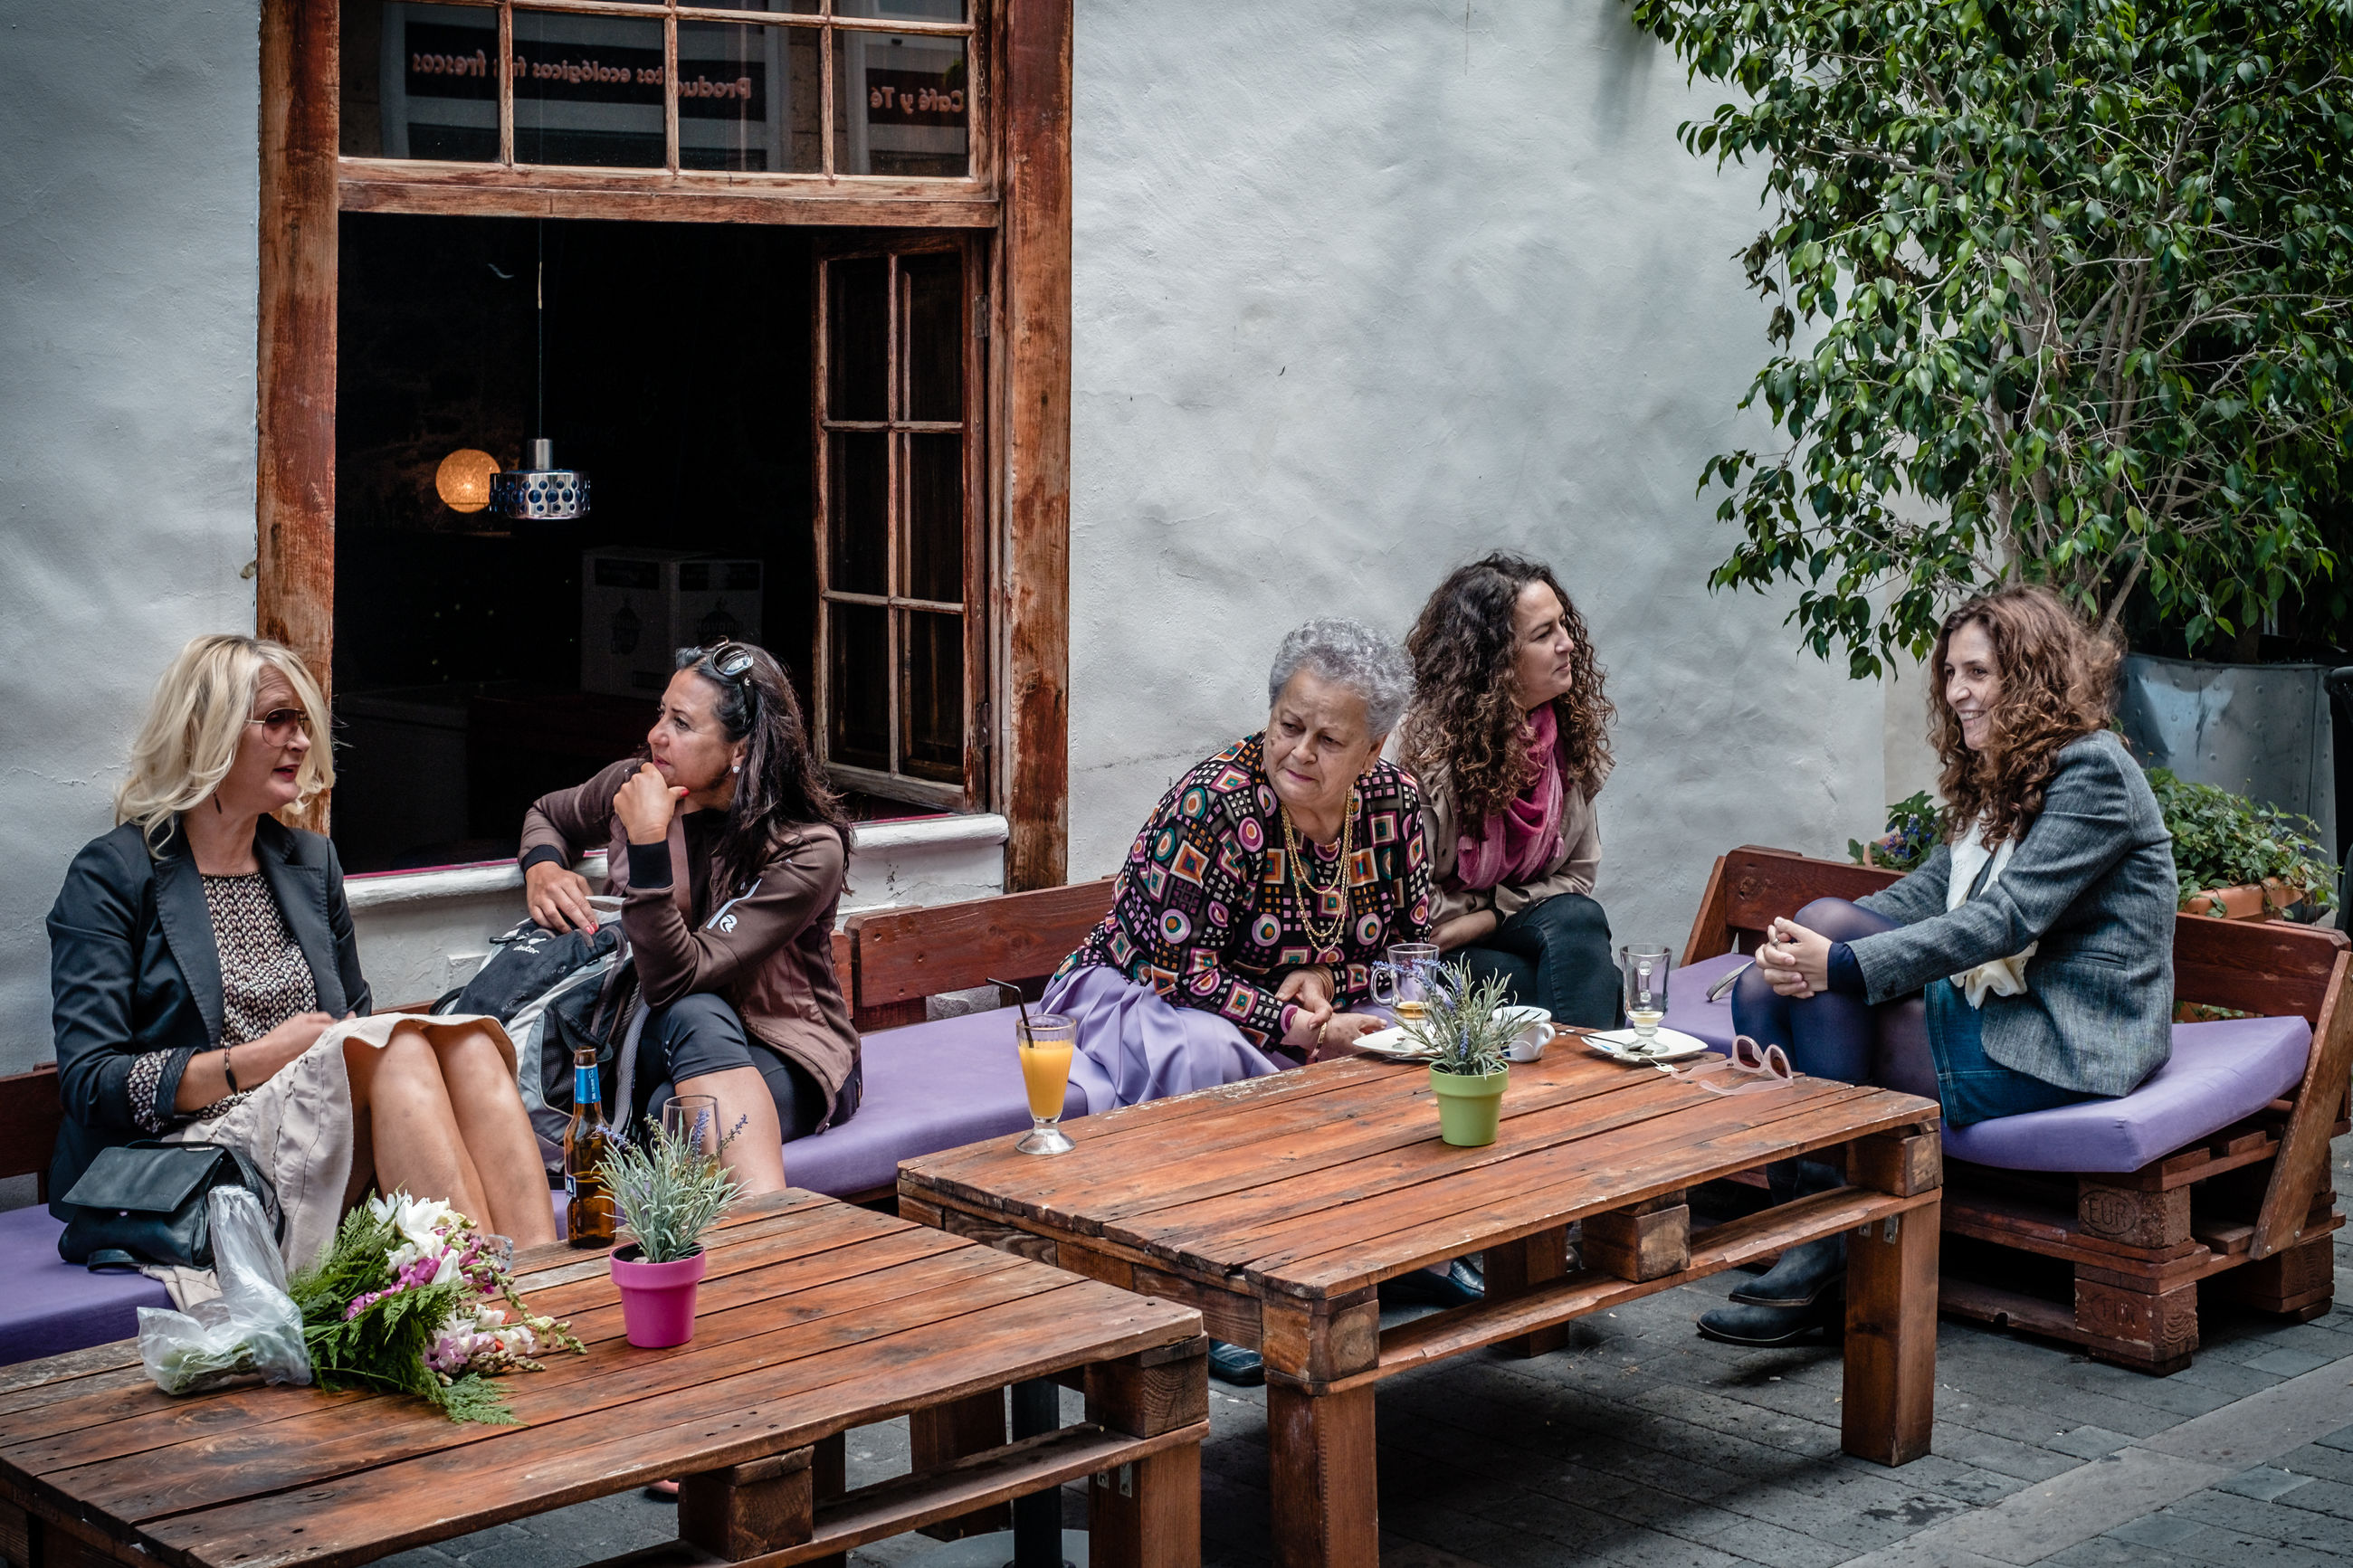 sitting, togetherness, friendship, table, casual clothing, leisure activity, day, real people, food and drink, drinking, lifestyles, enjoyment, young adult, outdoors, talking, young women, relaxation, full length, cafe, women, drink, men, bonding, alcohol, smiling, happy hour, adult, people, adults only